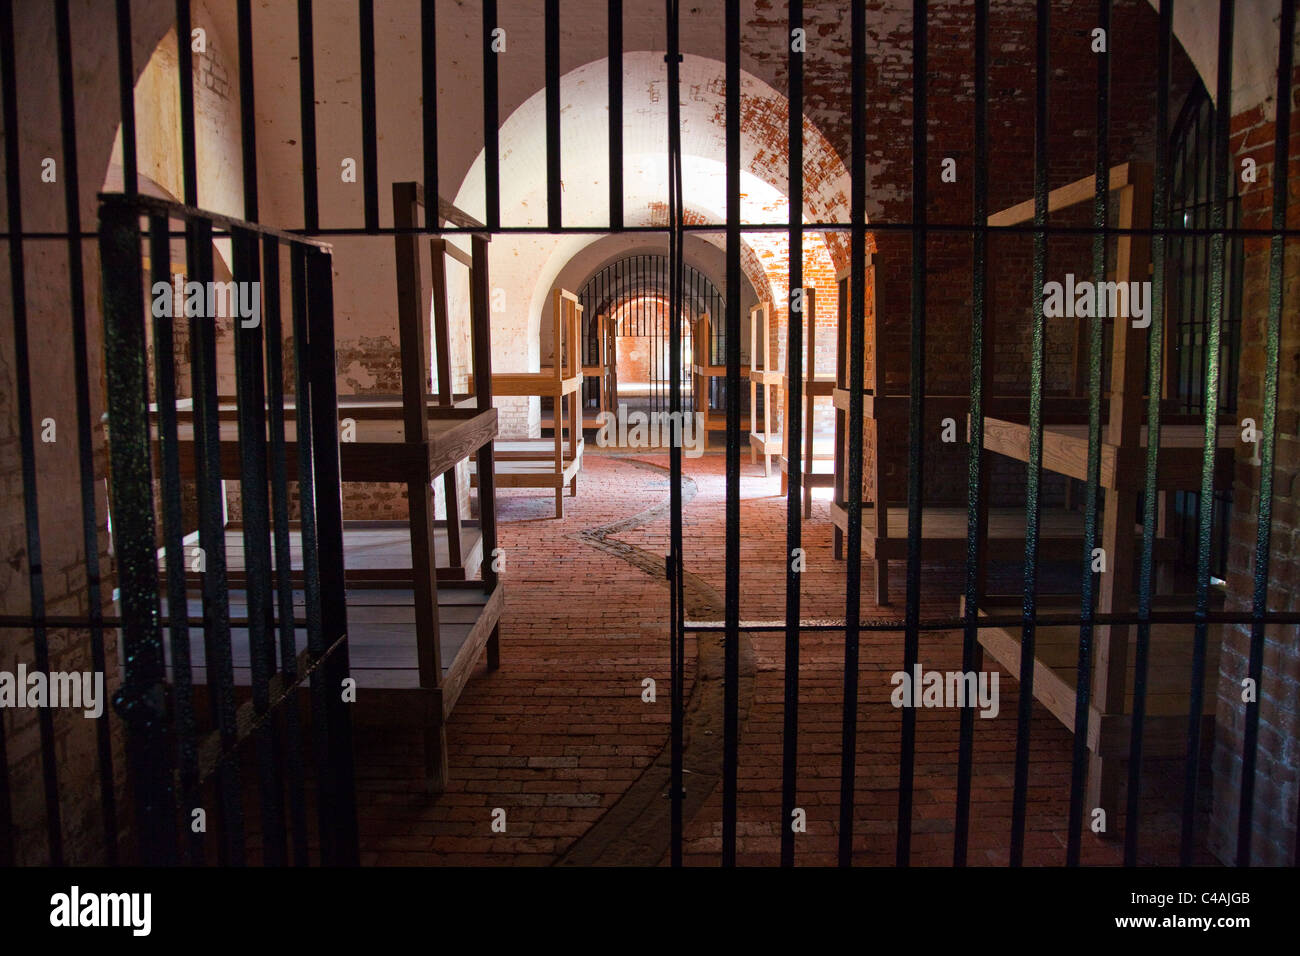 Used as prison for Confederate prisoners inside Fort Pulaski National Monument, Tybee Island, Georgia - Stock Image